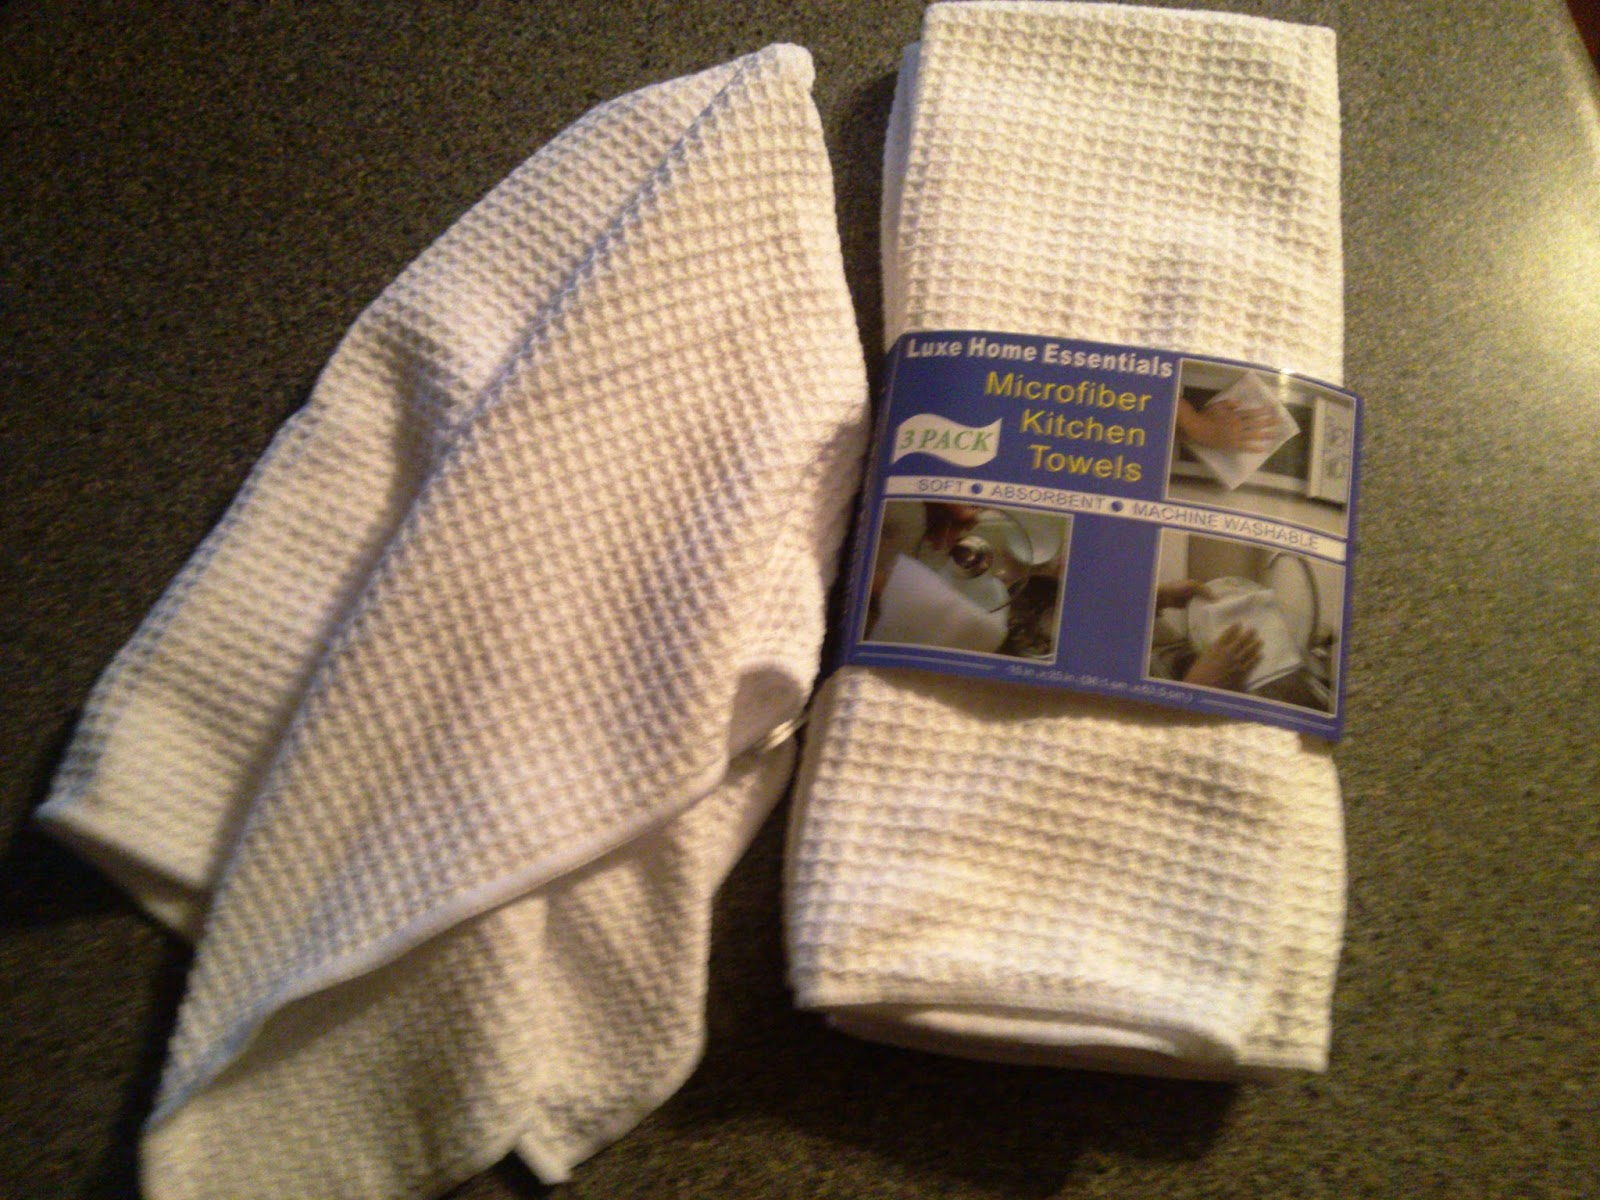 Luxe Home Essentials Microfiber Kitchen Dish Towels Review